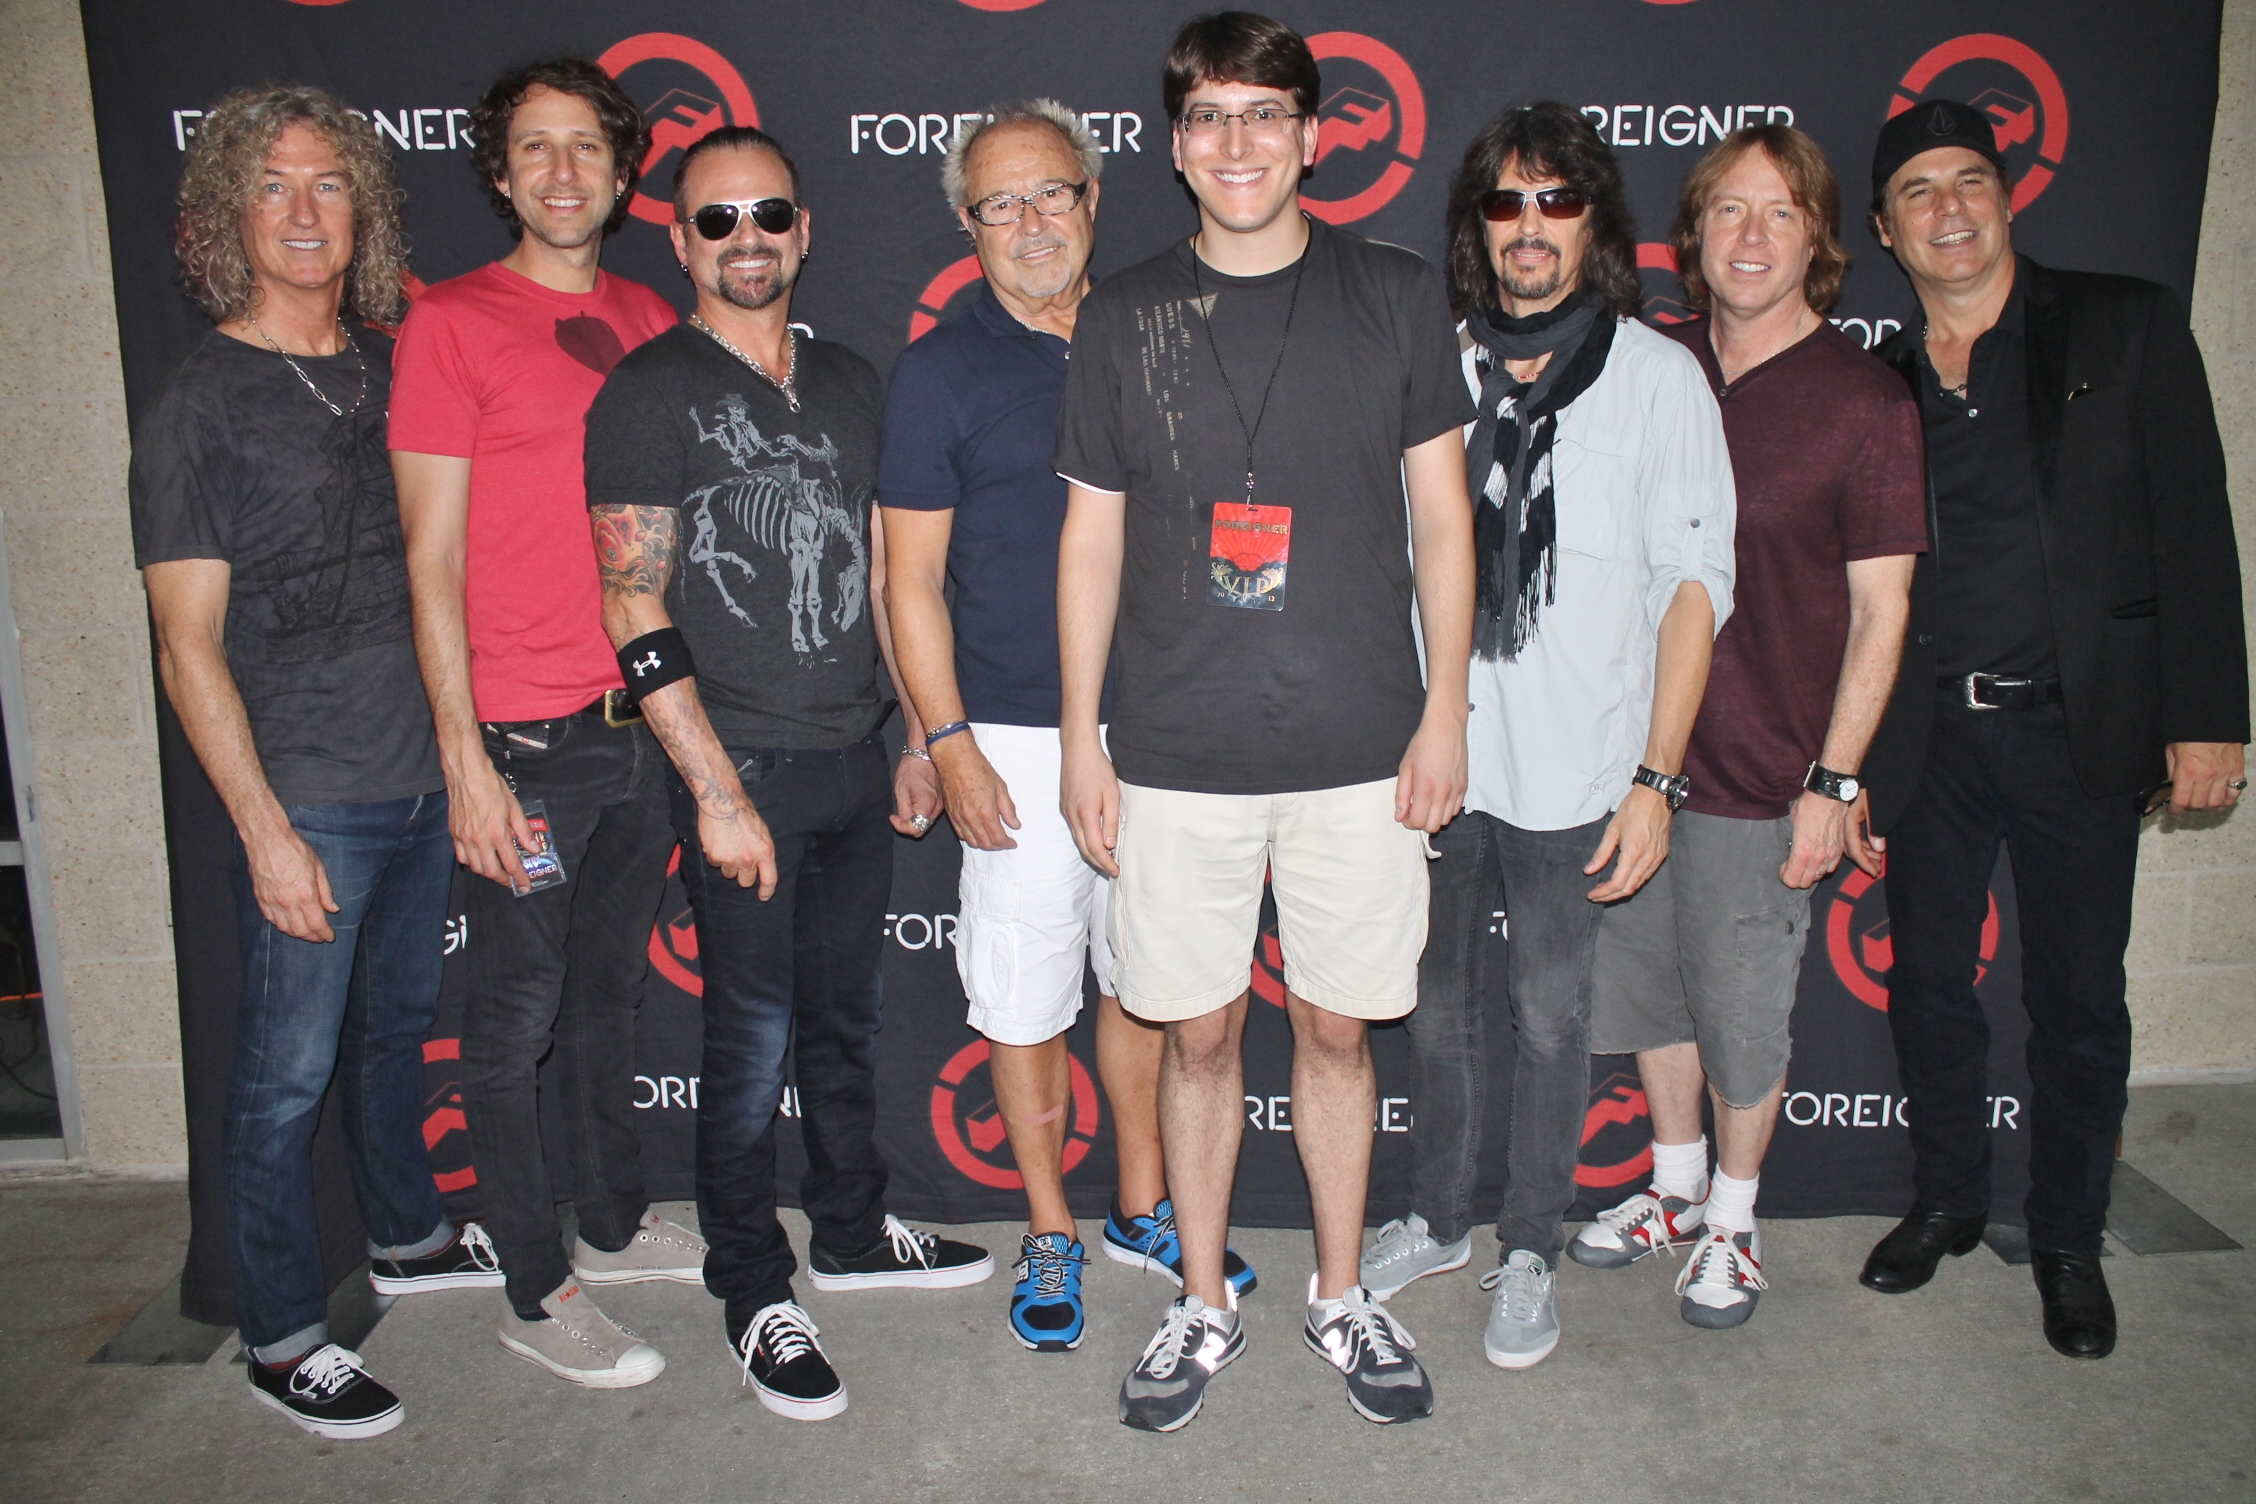 Foreigner Styx Don Felder Bring The Soundtrack Of Summer To Nj